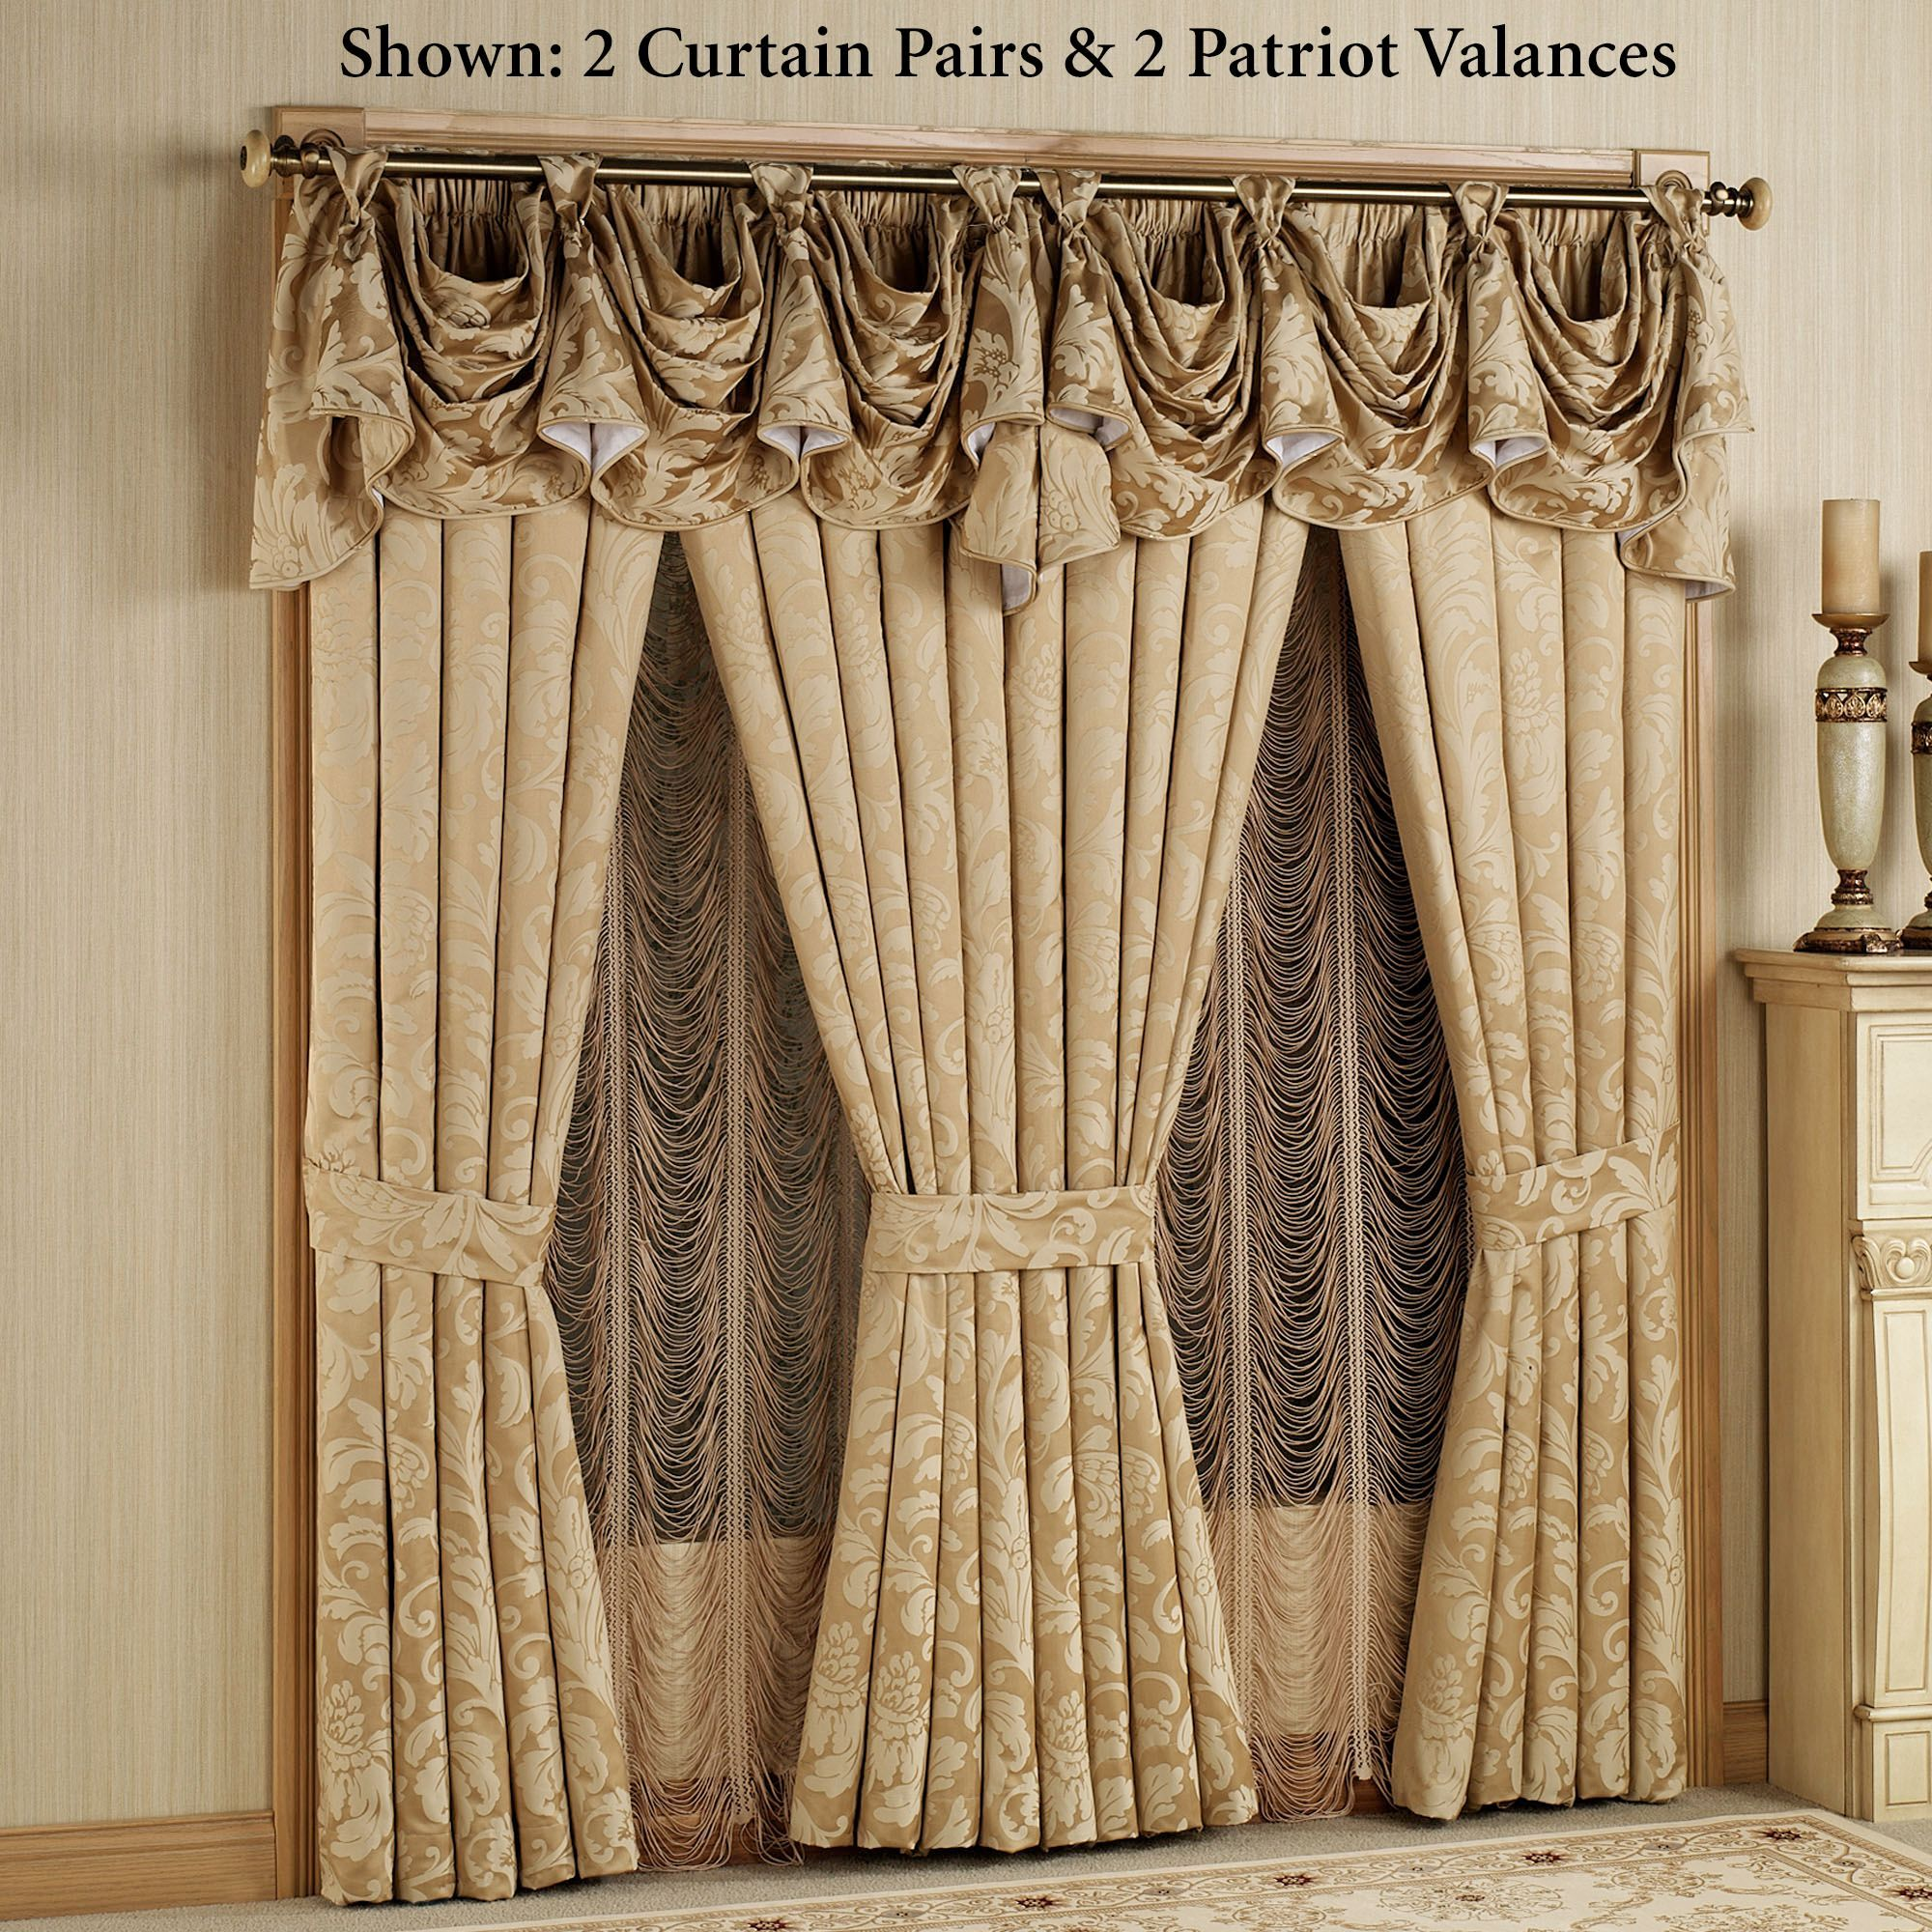 Black out curtains elegant valance curtains beaded valance curtains - Gold Elegant Curtains Google Search